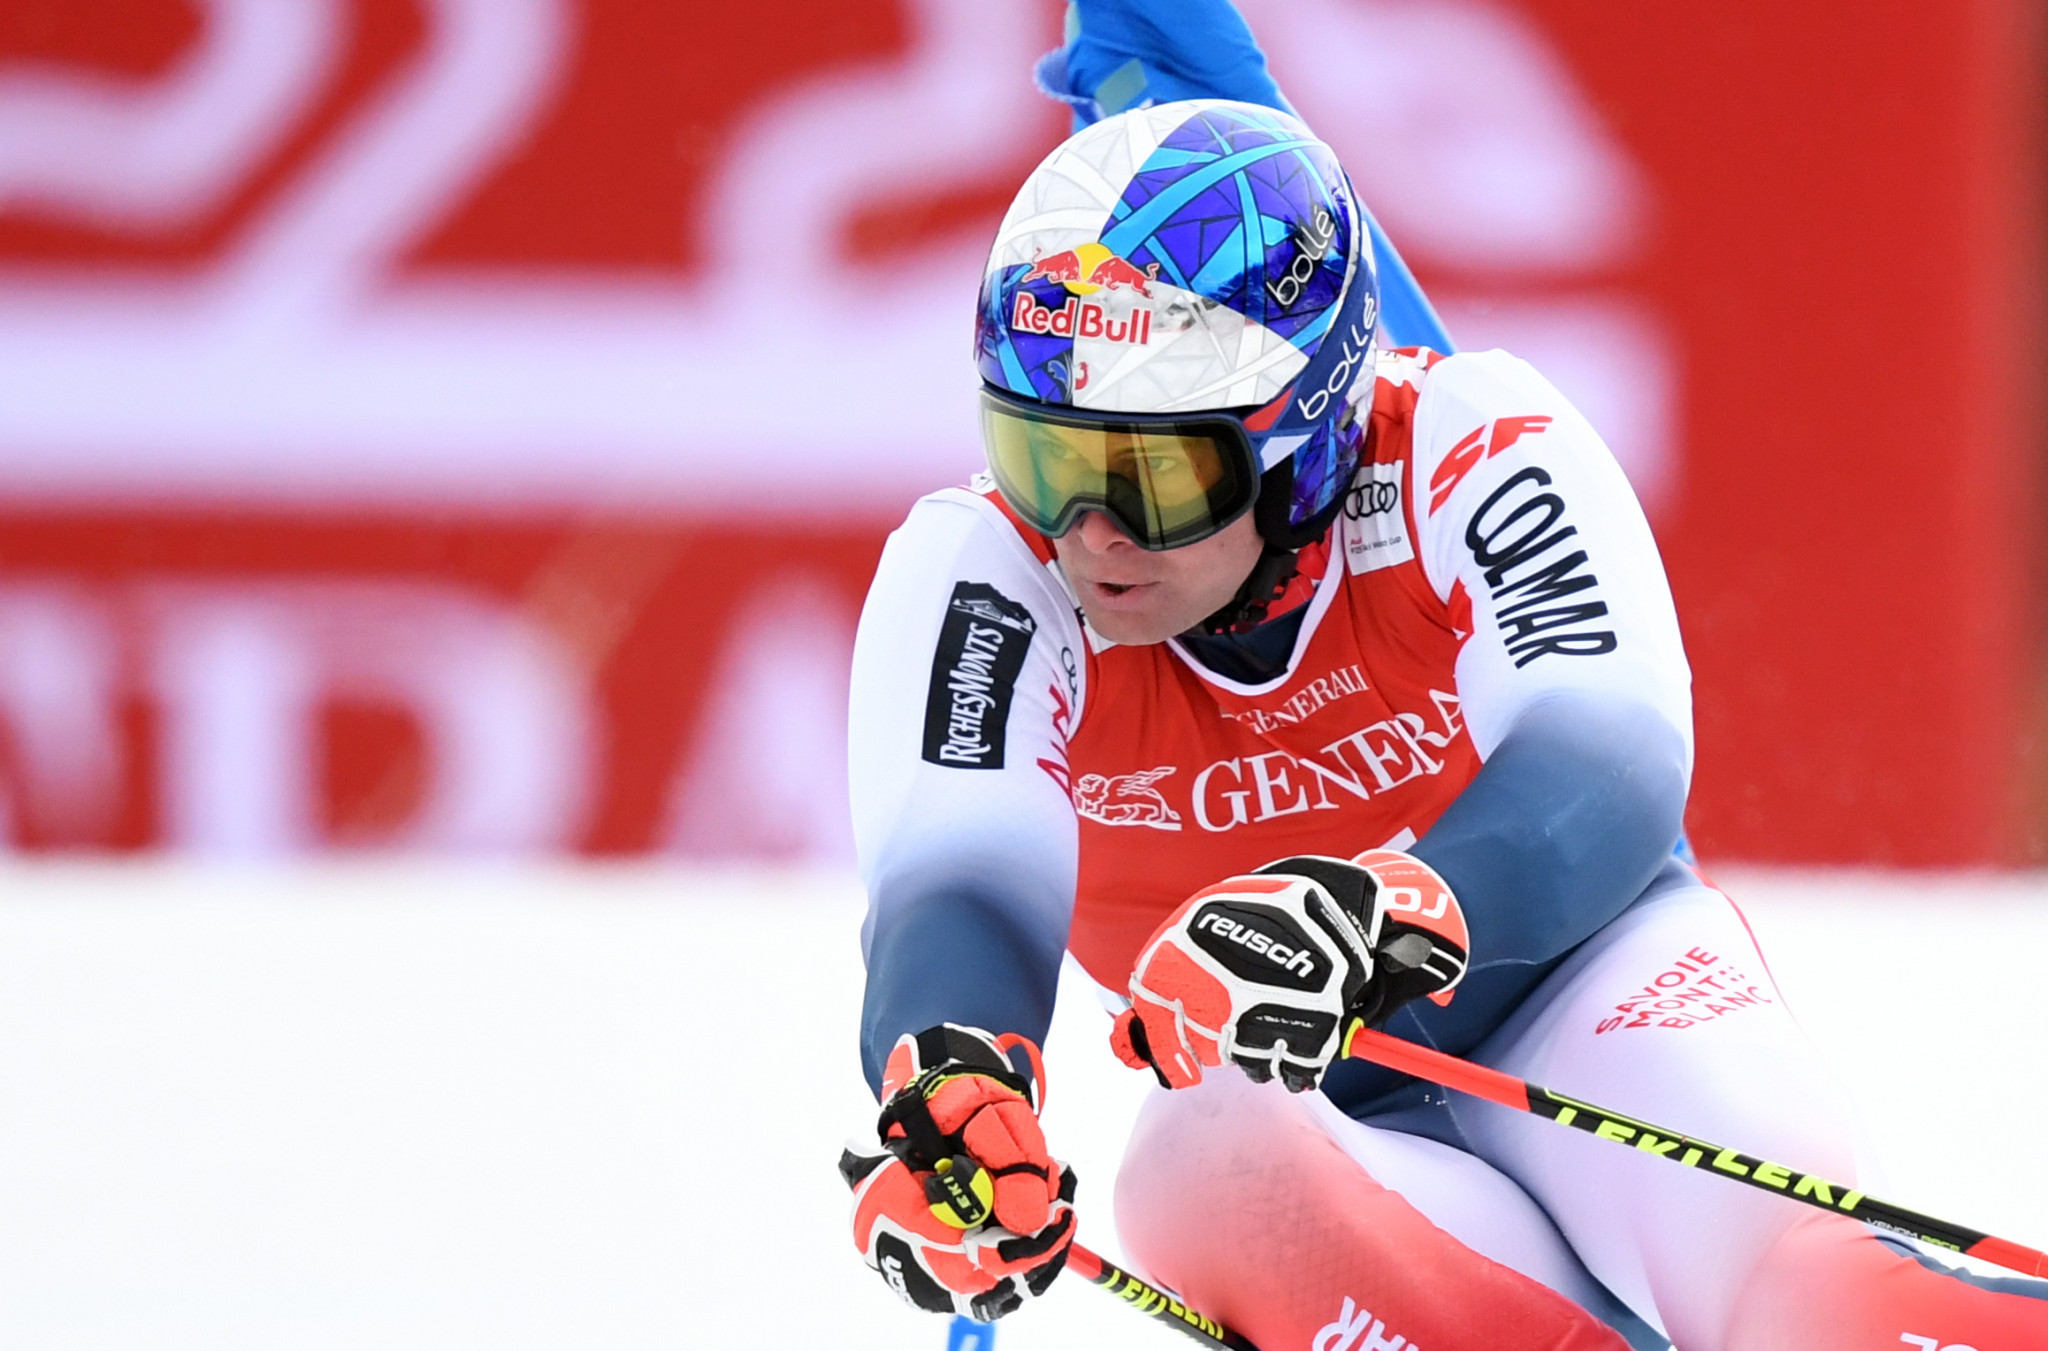 Pinturault second in overall standings after second giant slalom win of World Cup season